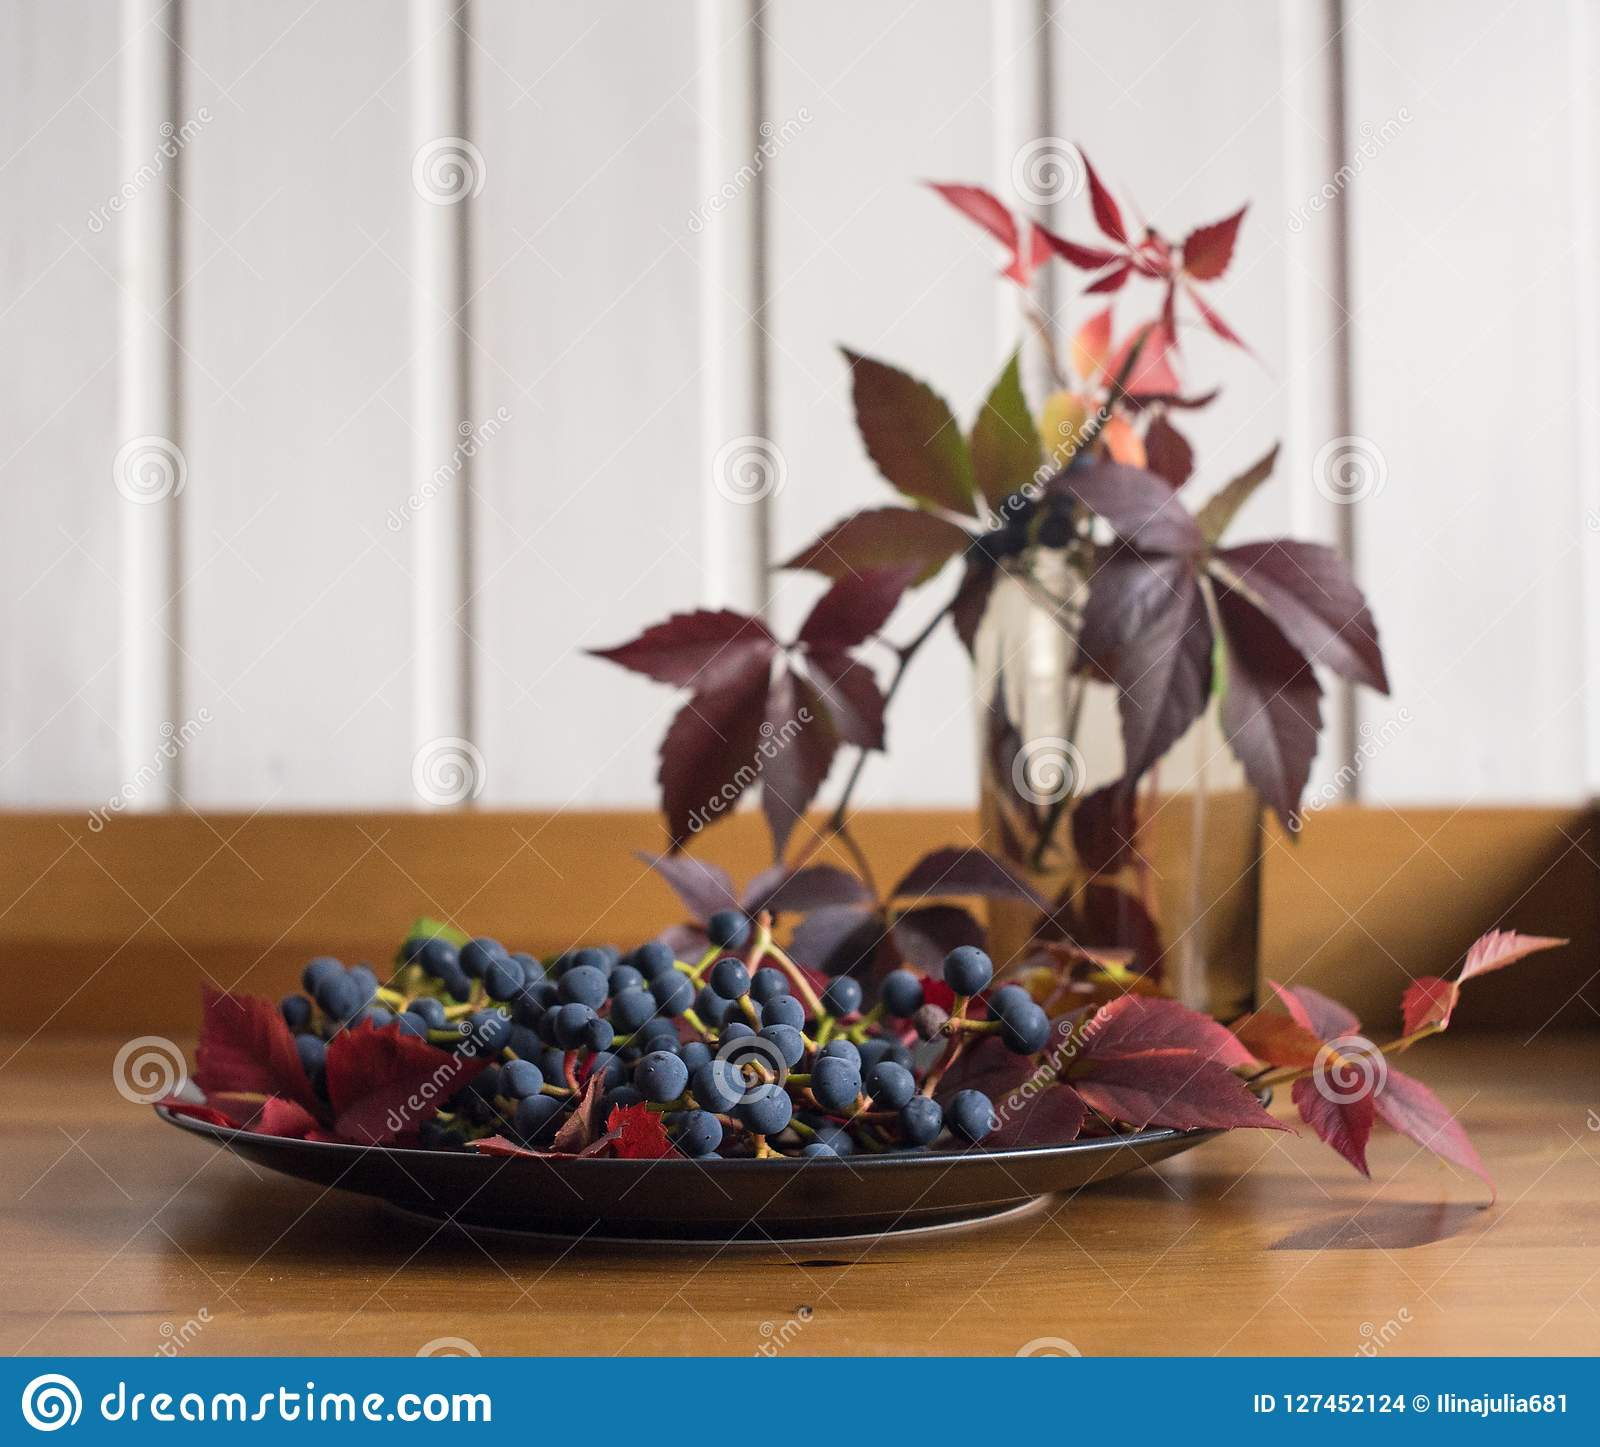 plate grapes red leaves blue berries still life